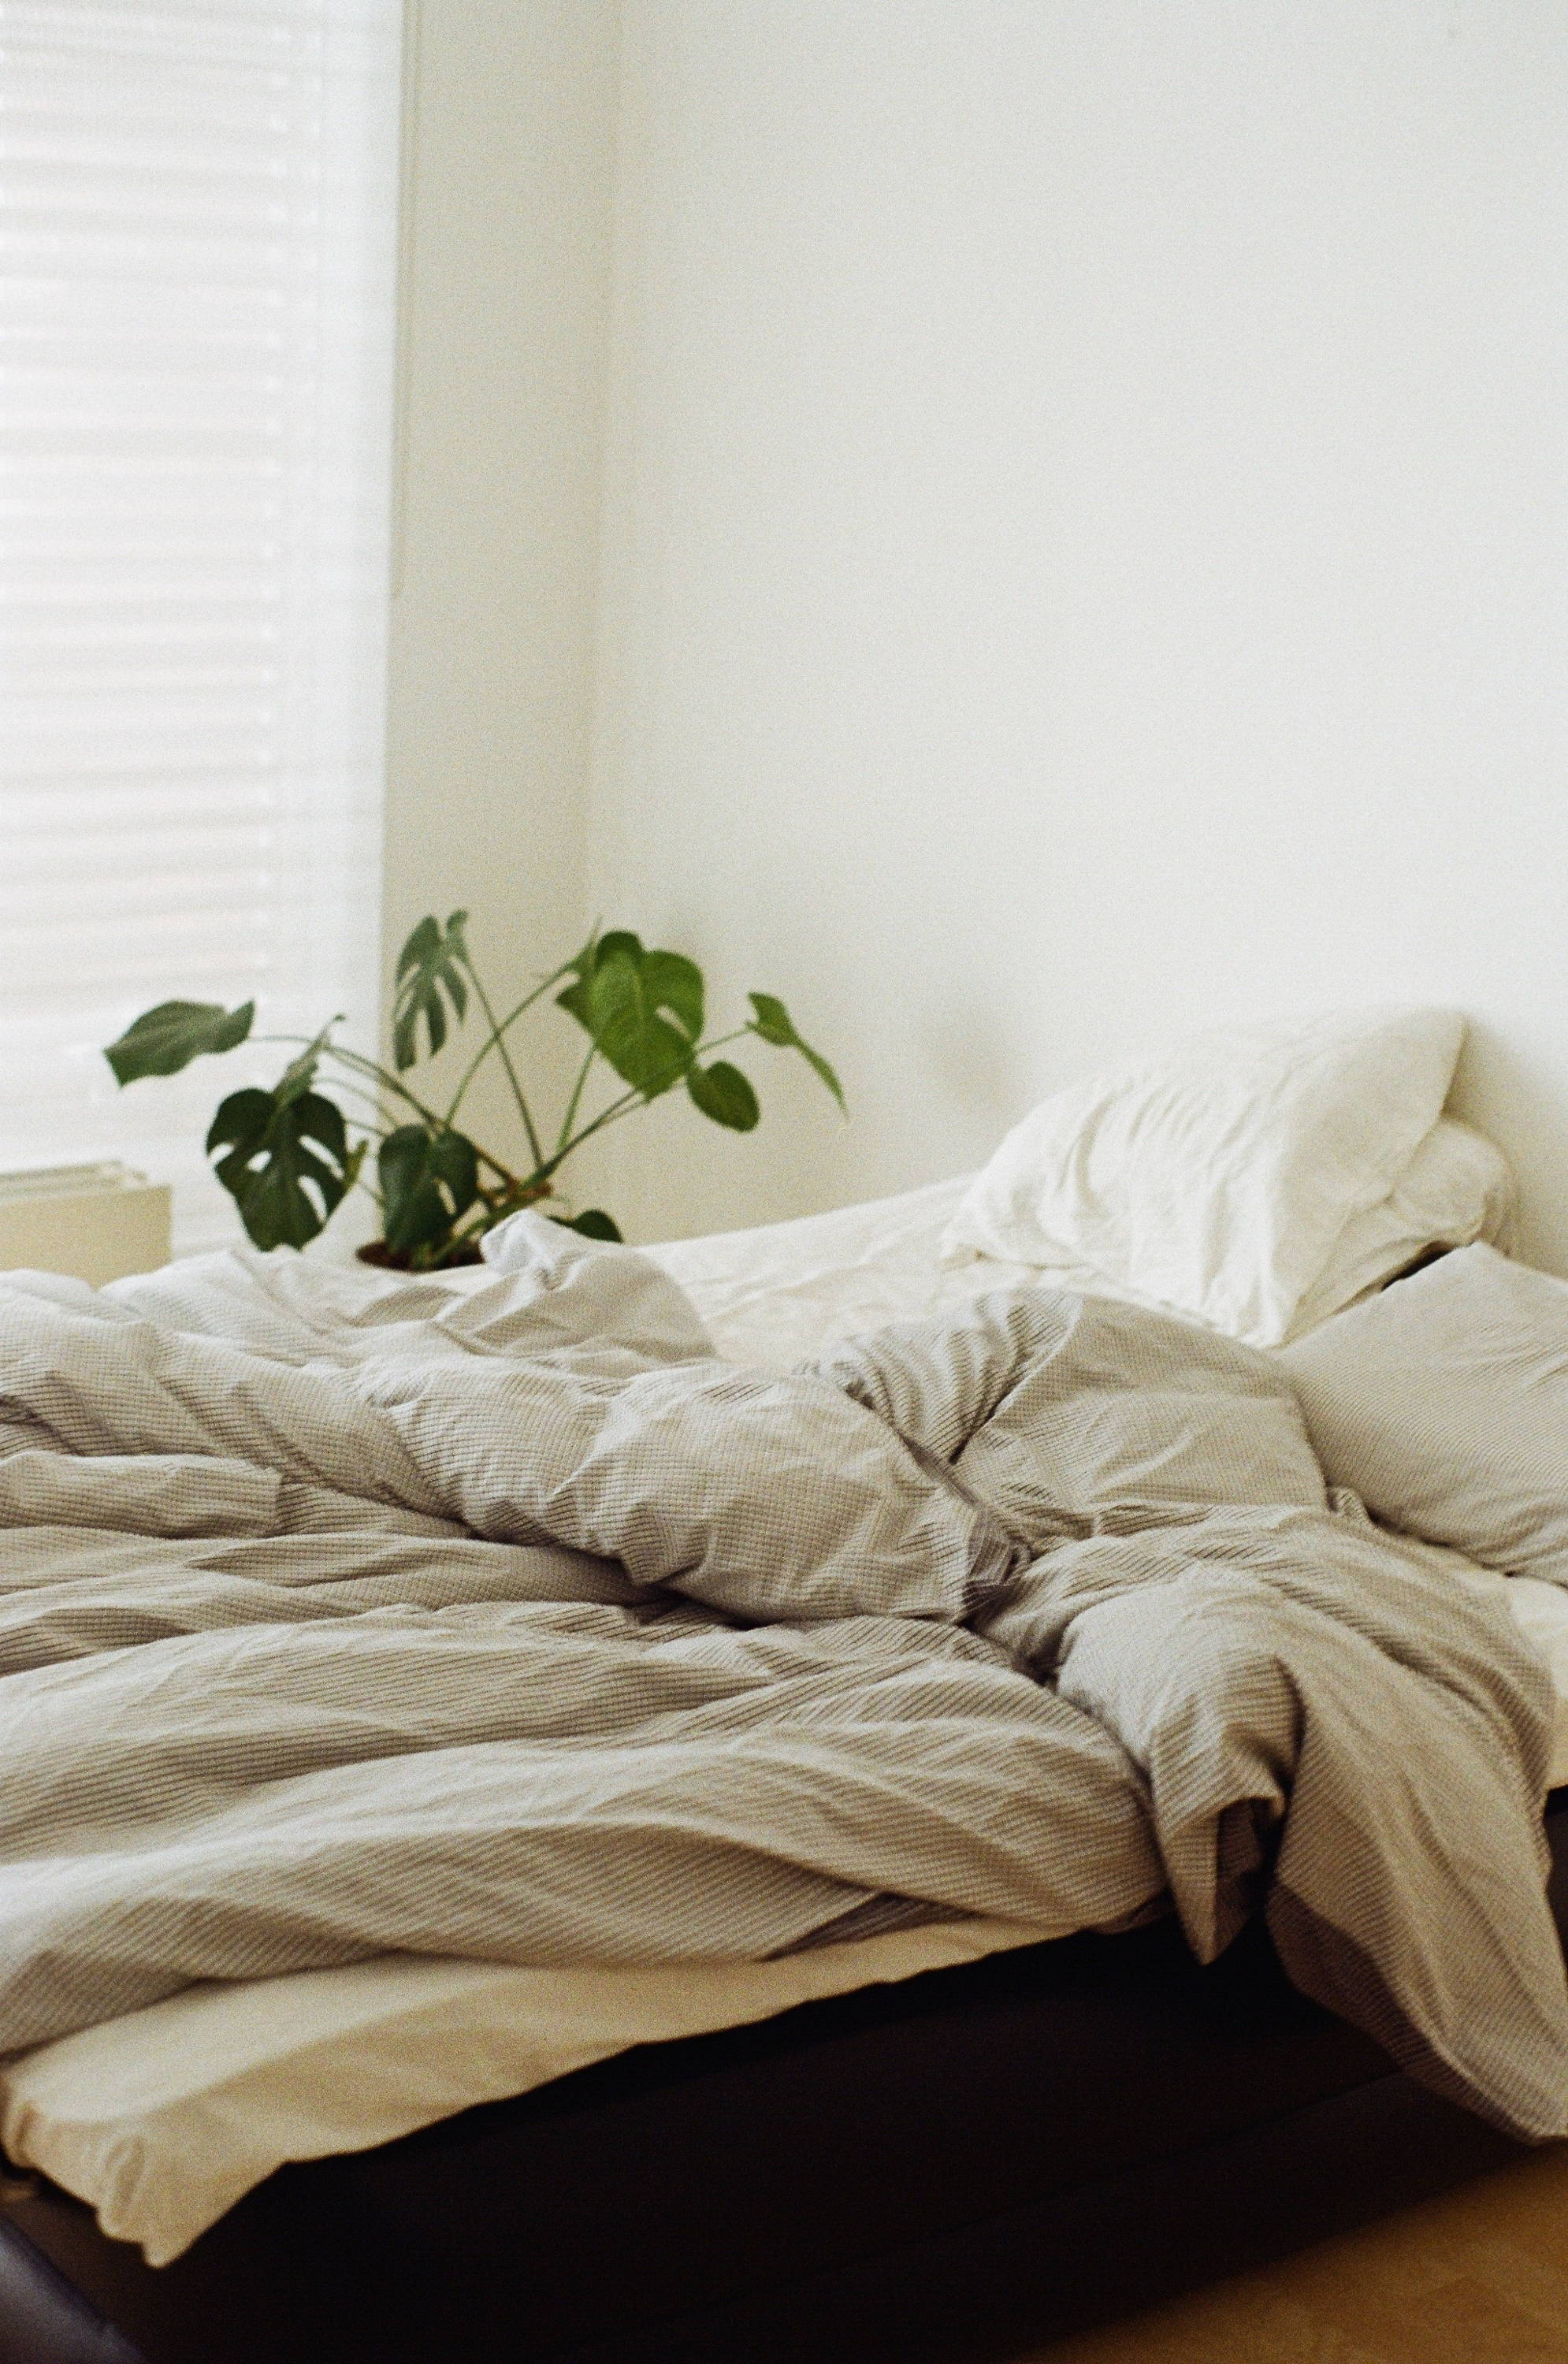 Messy bed with a plant at the corner - Photo by Harry Page from Pexels